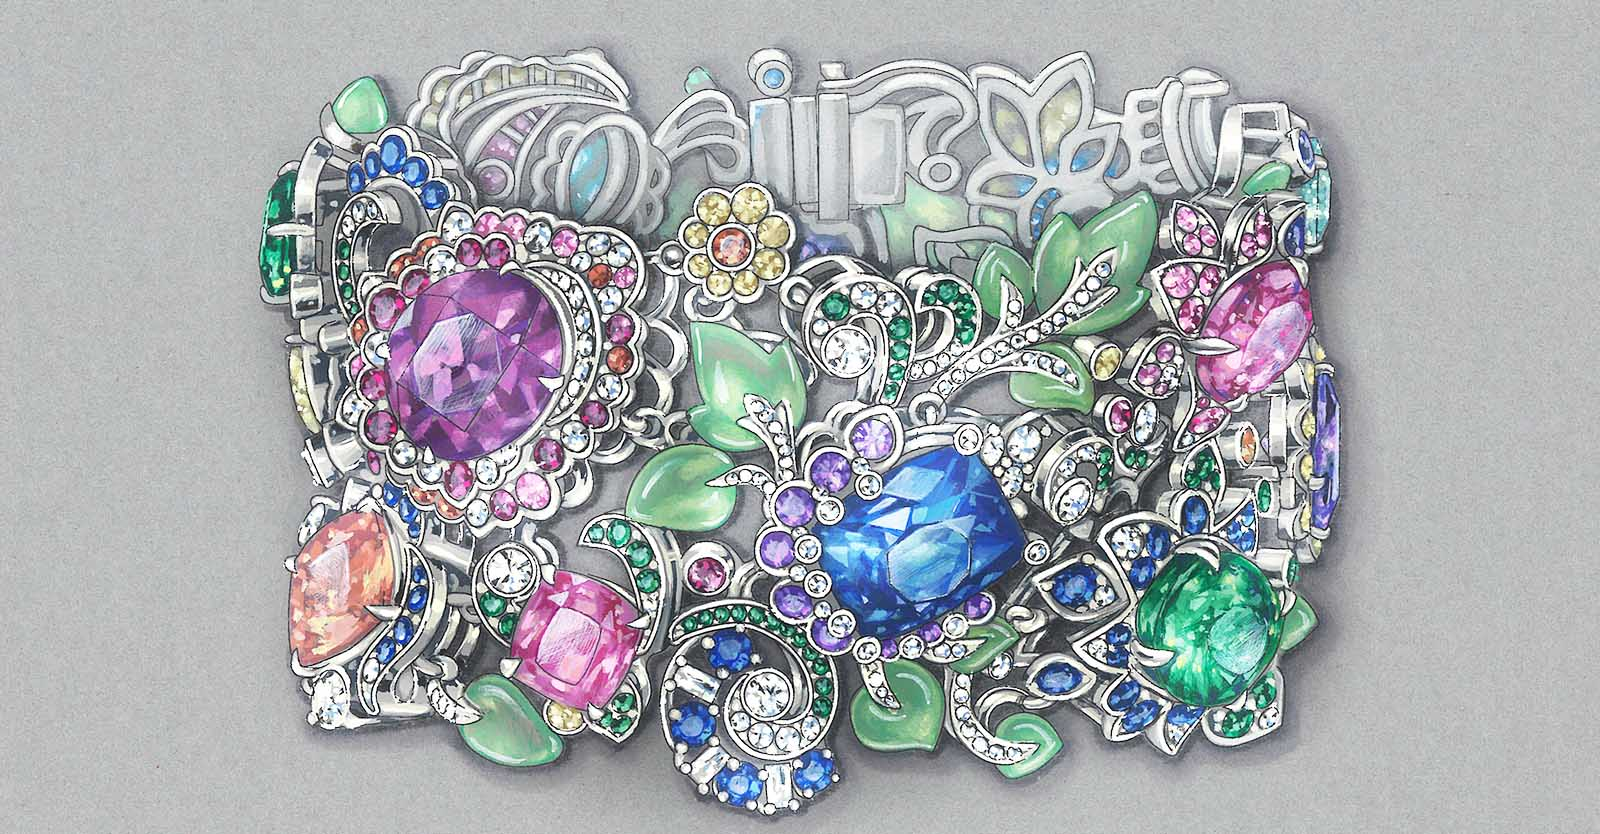 Image: Coloured drawing of a unique faberge jewellery piece. Text: Bespoke & Personalization